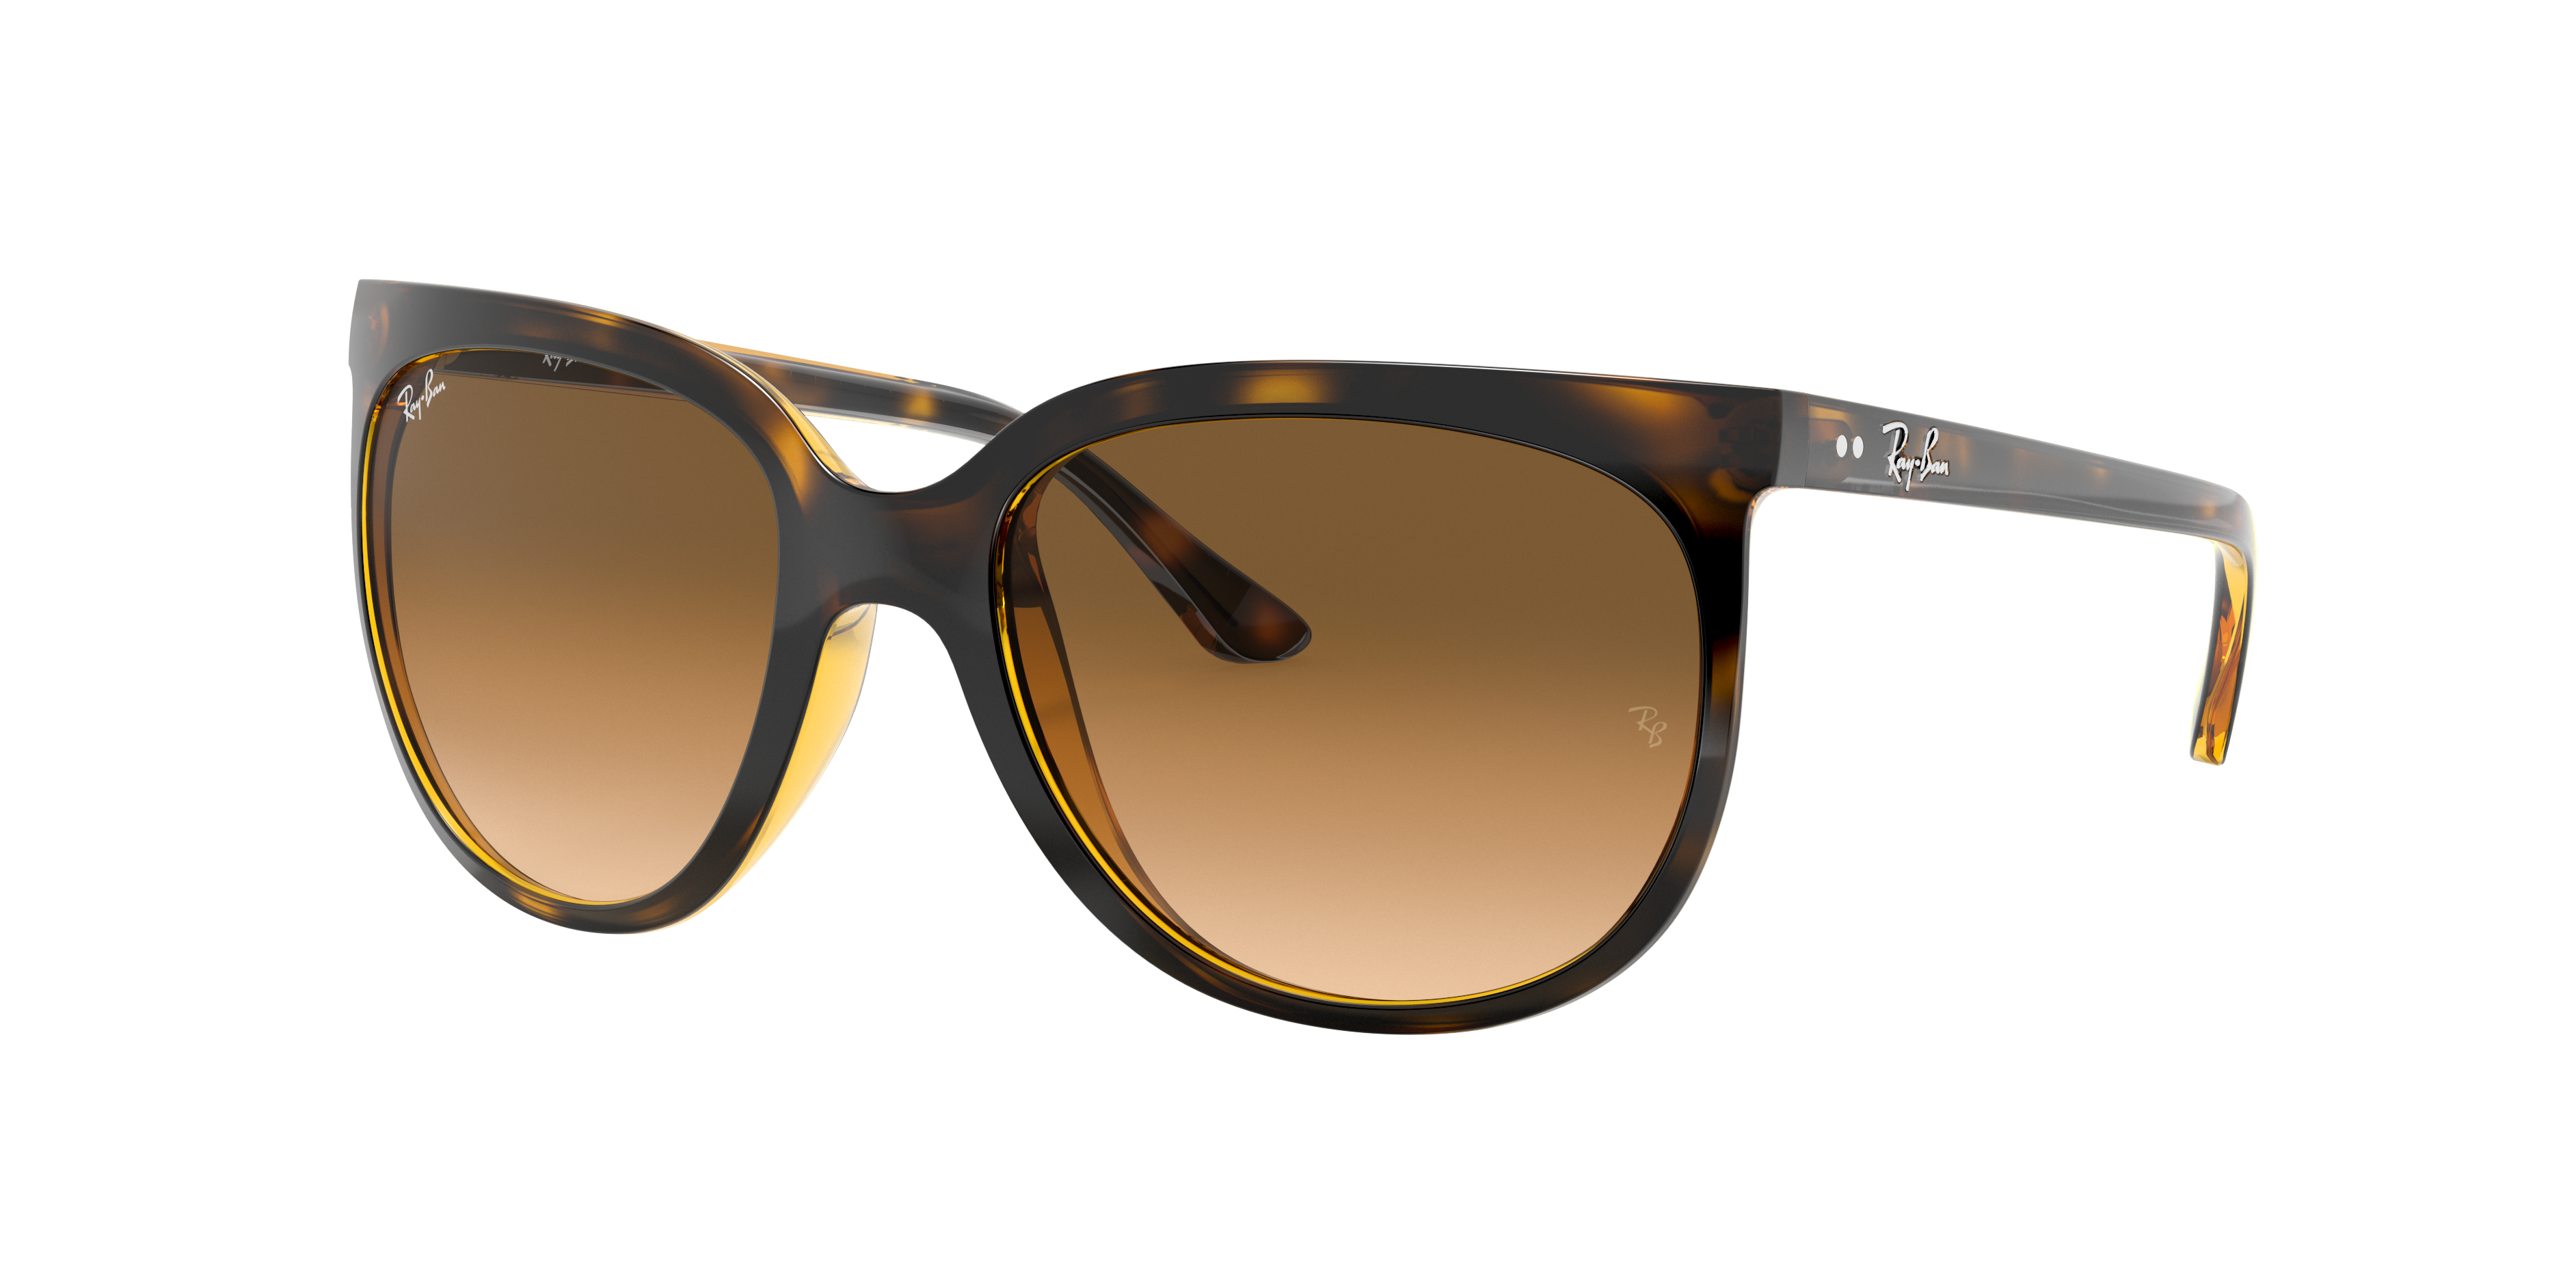 Ray-Ban Cats 1000 Tortoise, Brown Lenses - RB4126